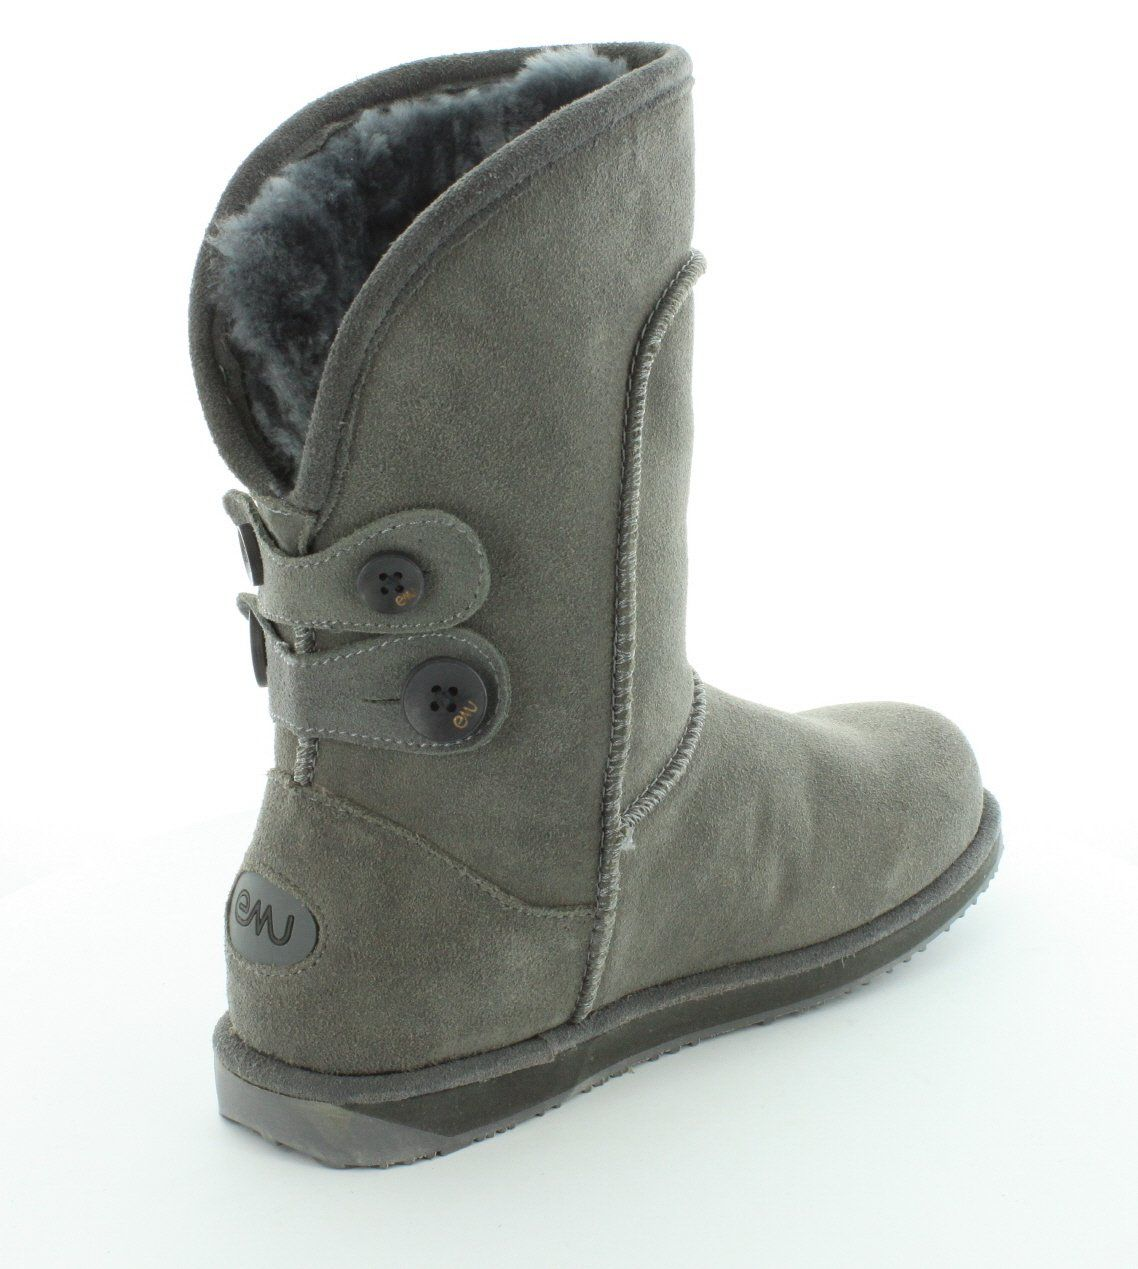 Amazon.com: EMU Womens Charlotte Boot: Shoes $200.00 (dang it!)